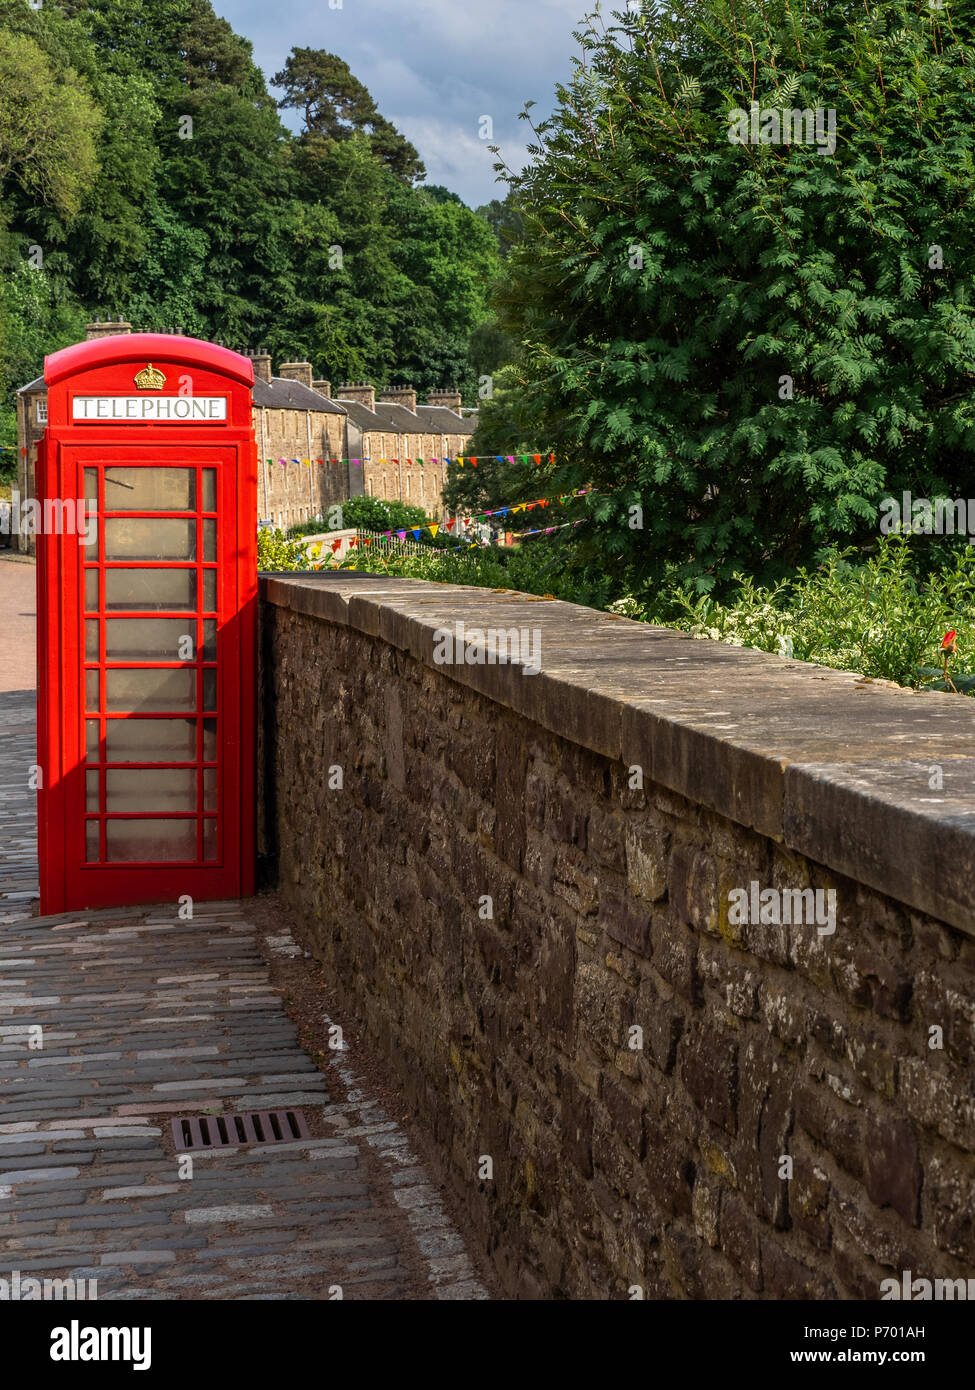 The iconic red British telephone box or kiosk once installed in every town and village with a Post Office is now disappearing from the streets of Brit - Stock Image